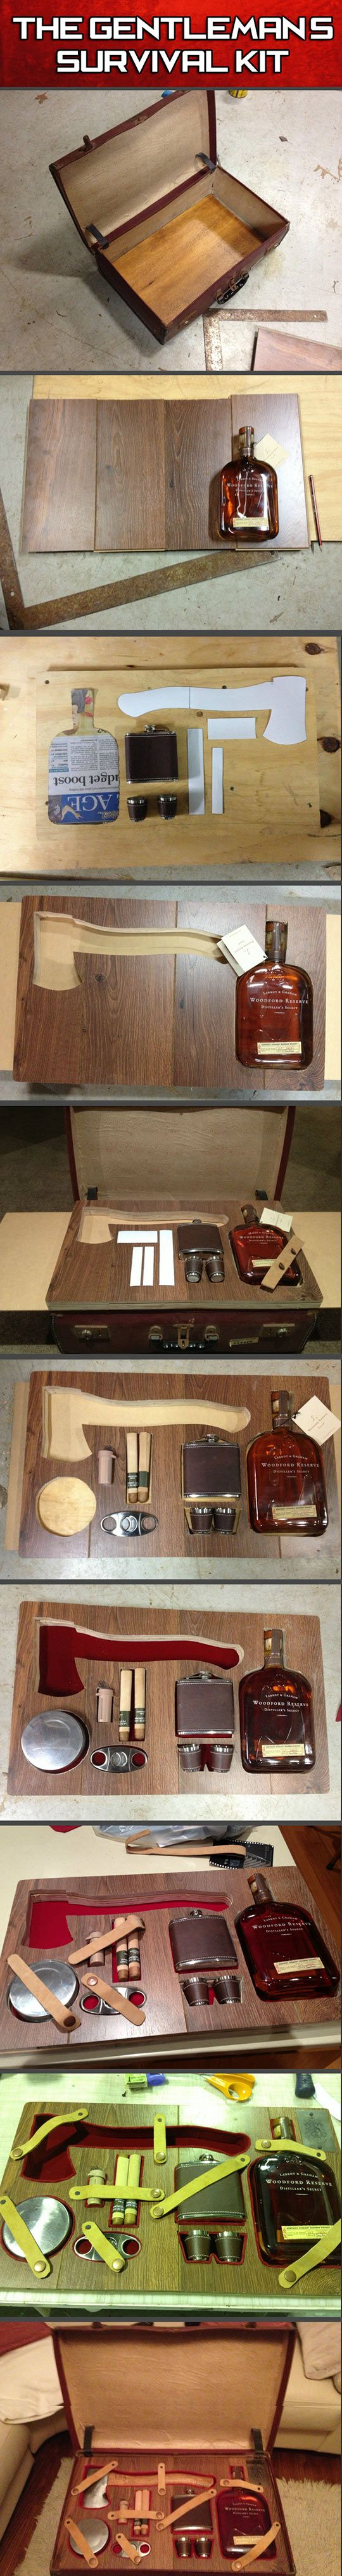 The gentleman's survival kit. - this is so epic i don't even know how to contain myself